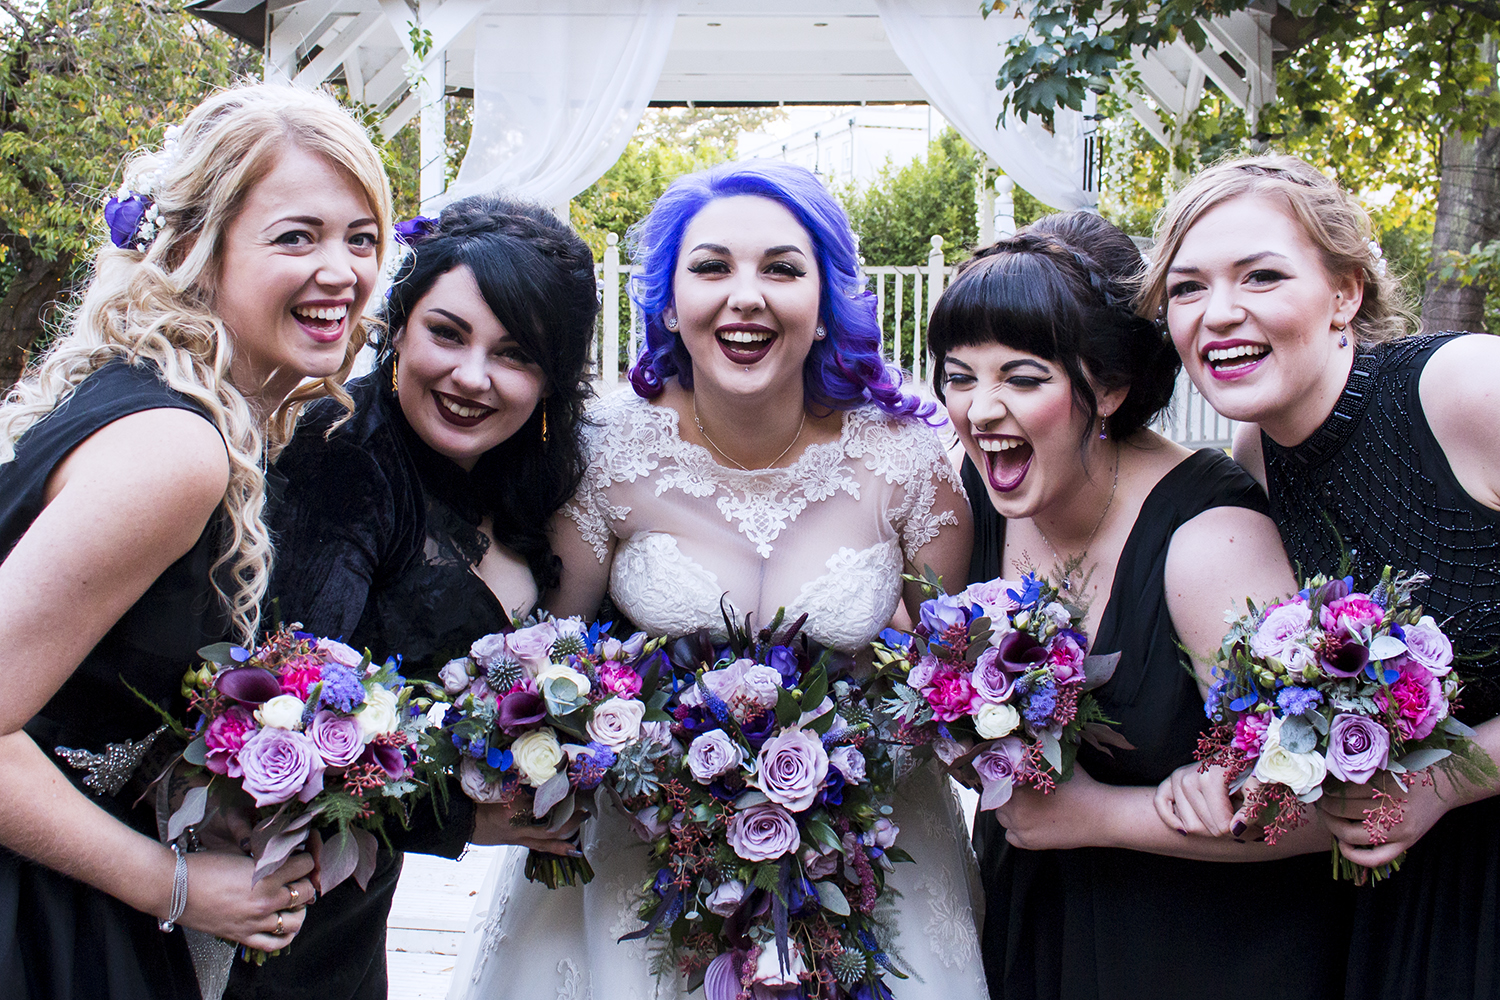 Her bridesmaids were wearing mismatching black dresses of their choice